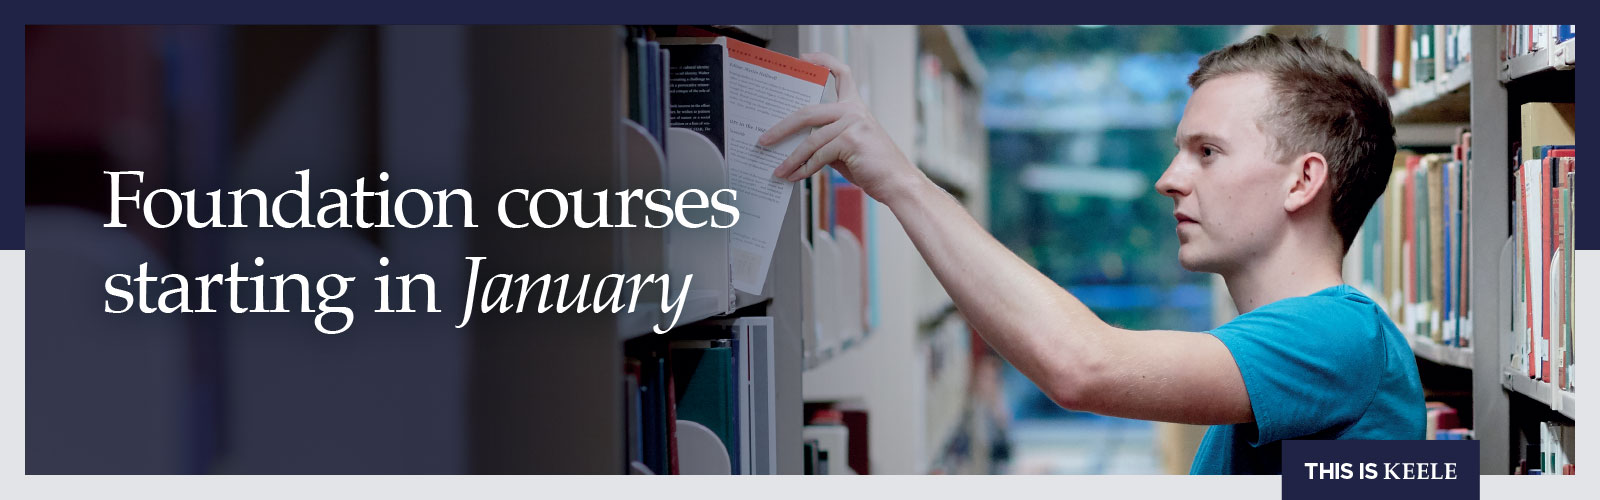 Foundation year courses starting in January